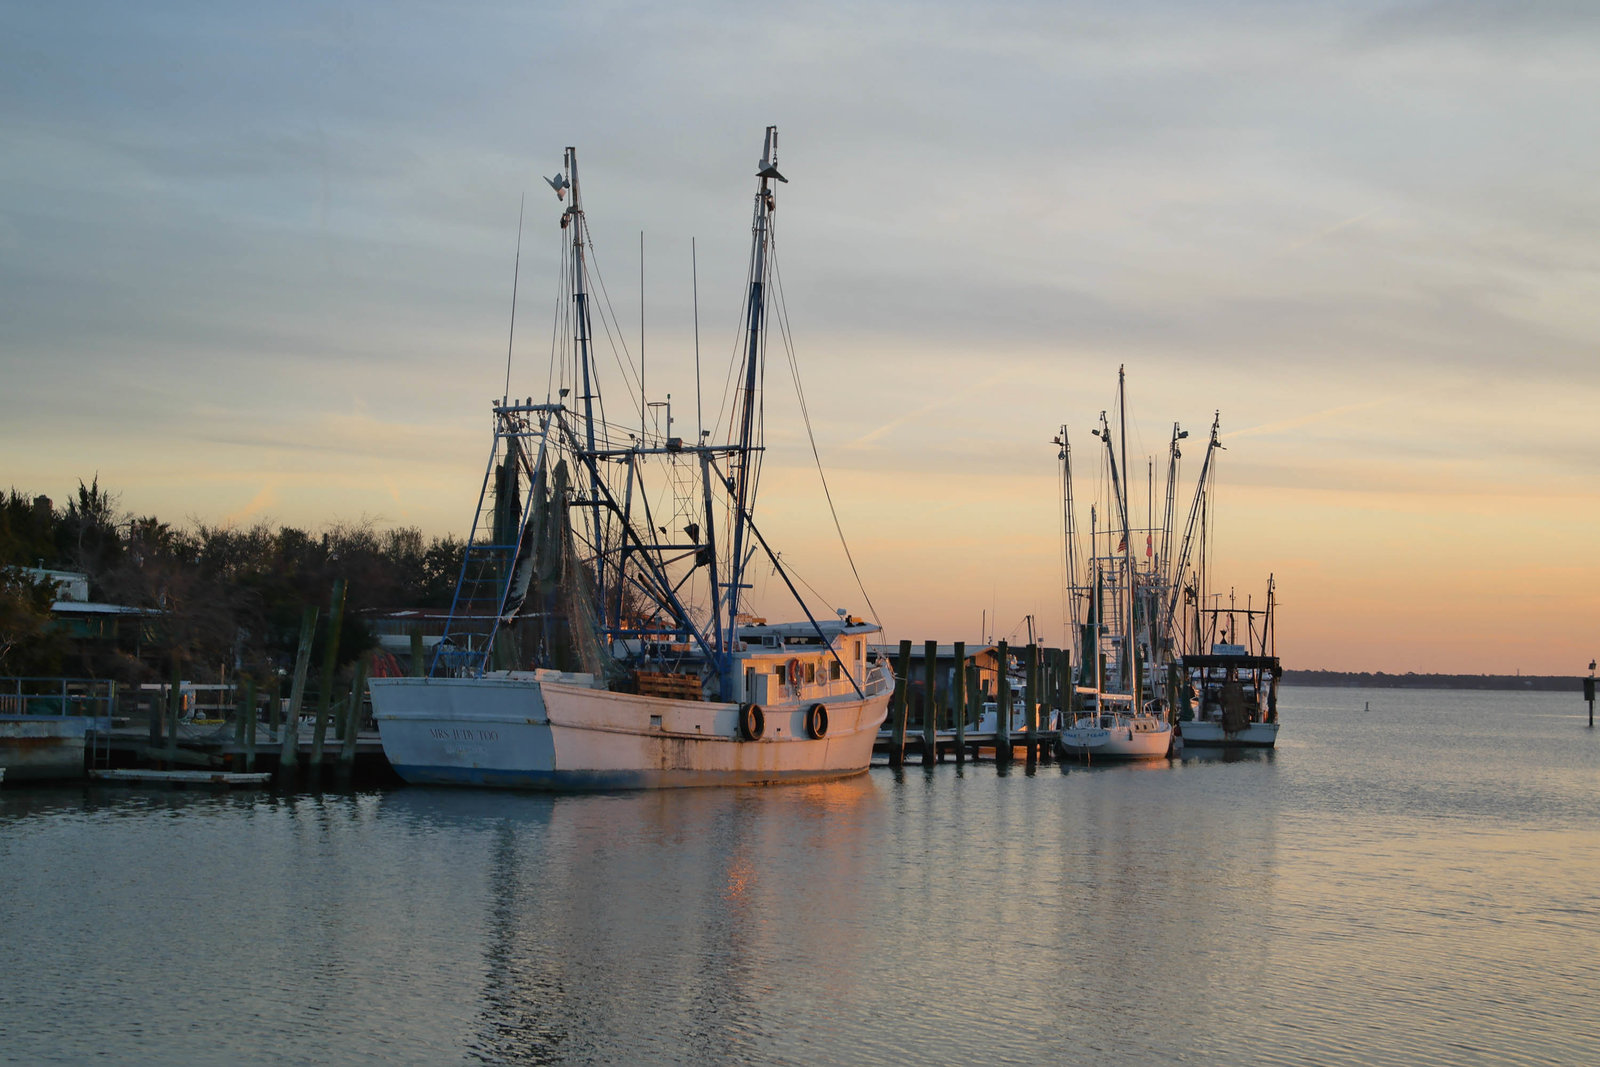 Boats docked at Shem Creek, Charleston, SC photography